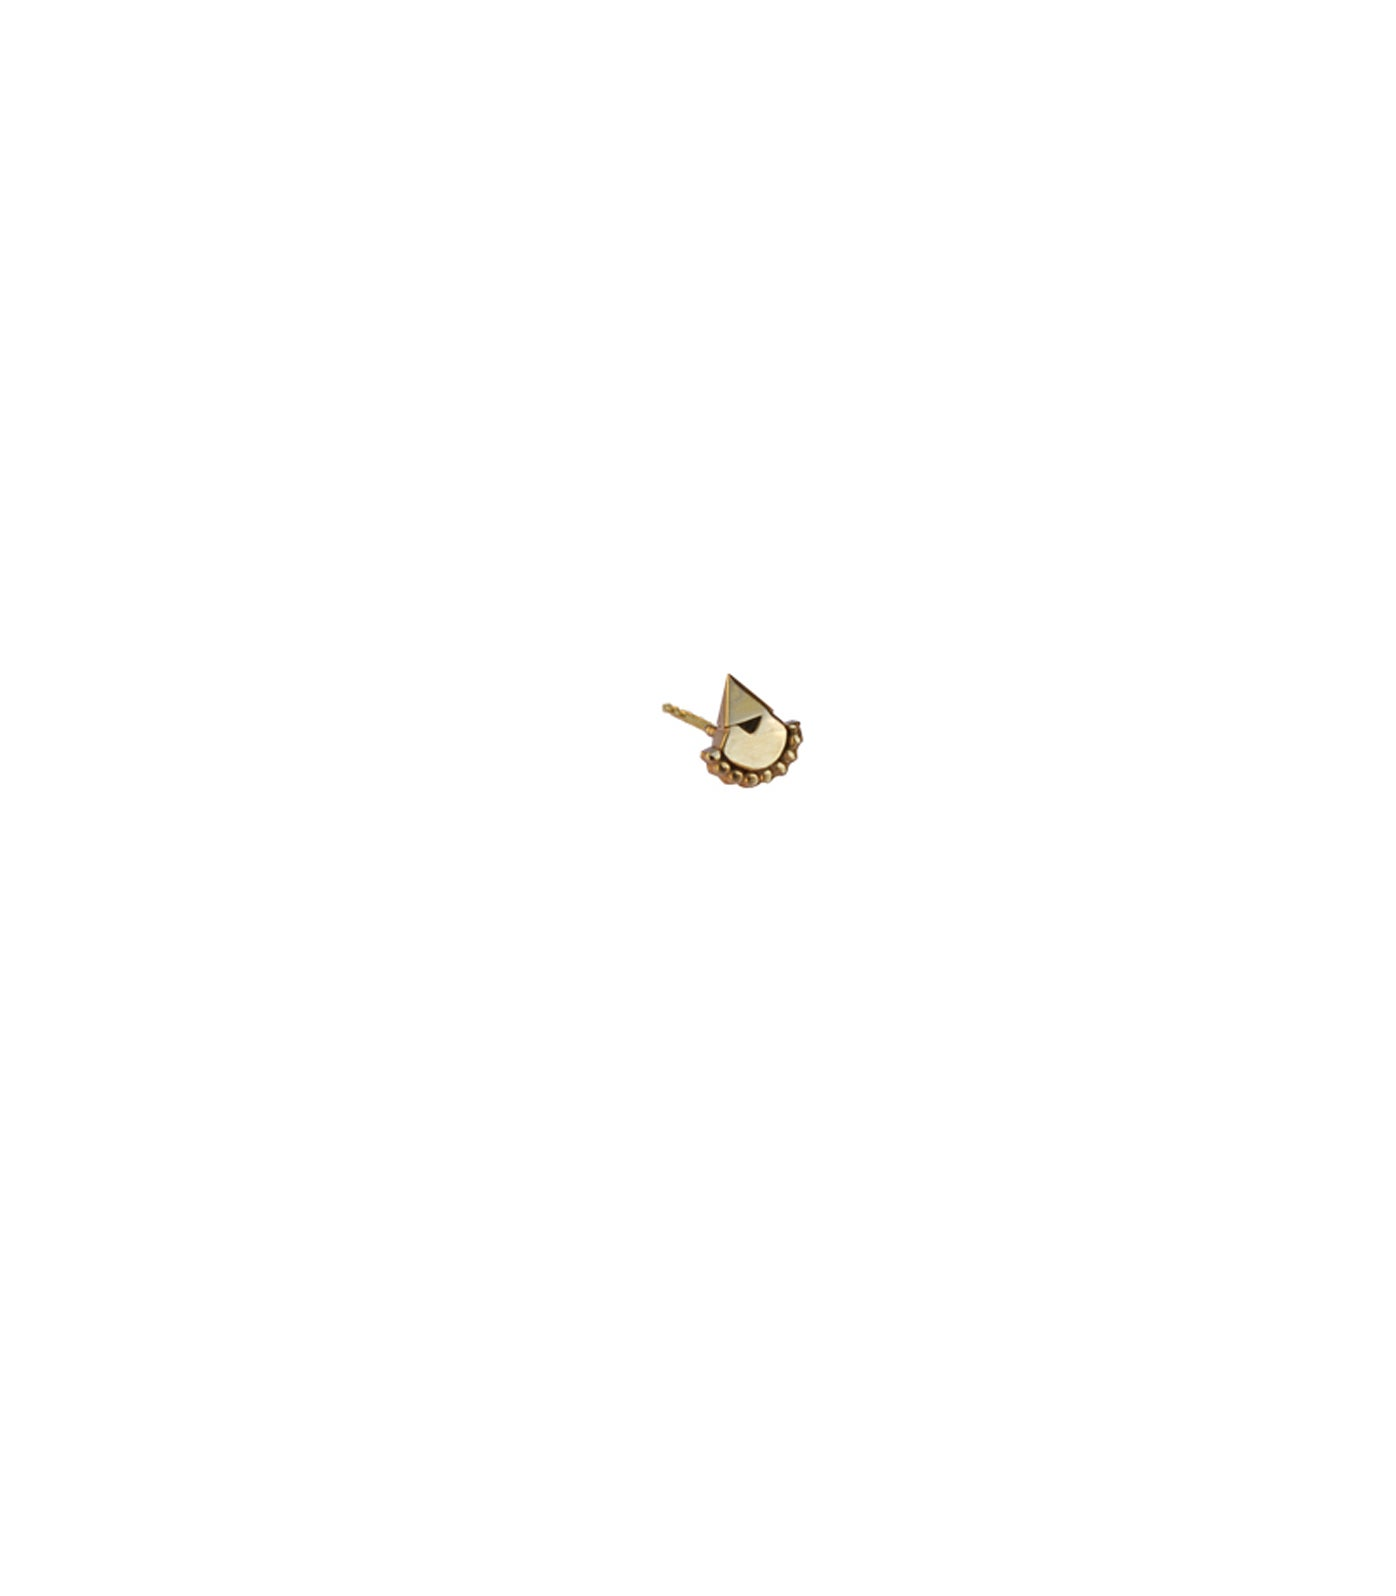 Image of Microdot#2 goldplated/single